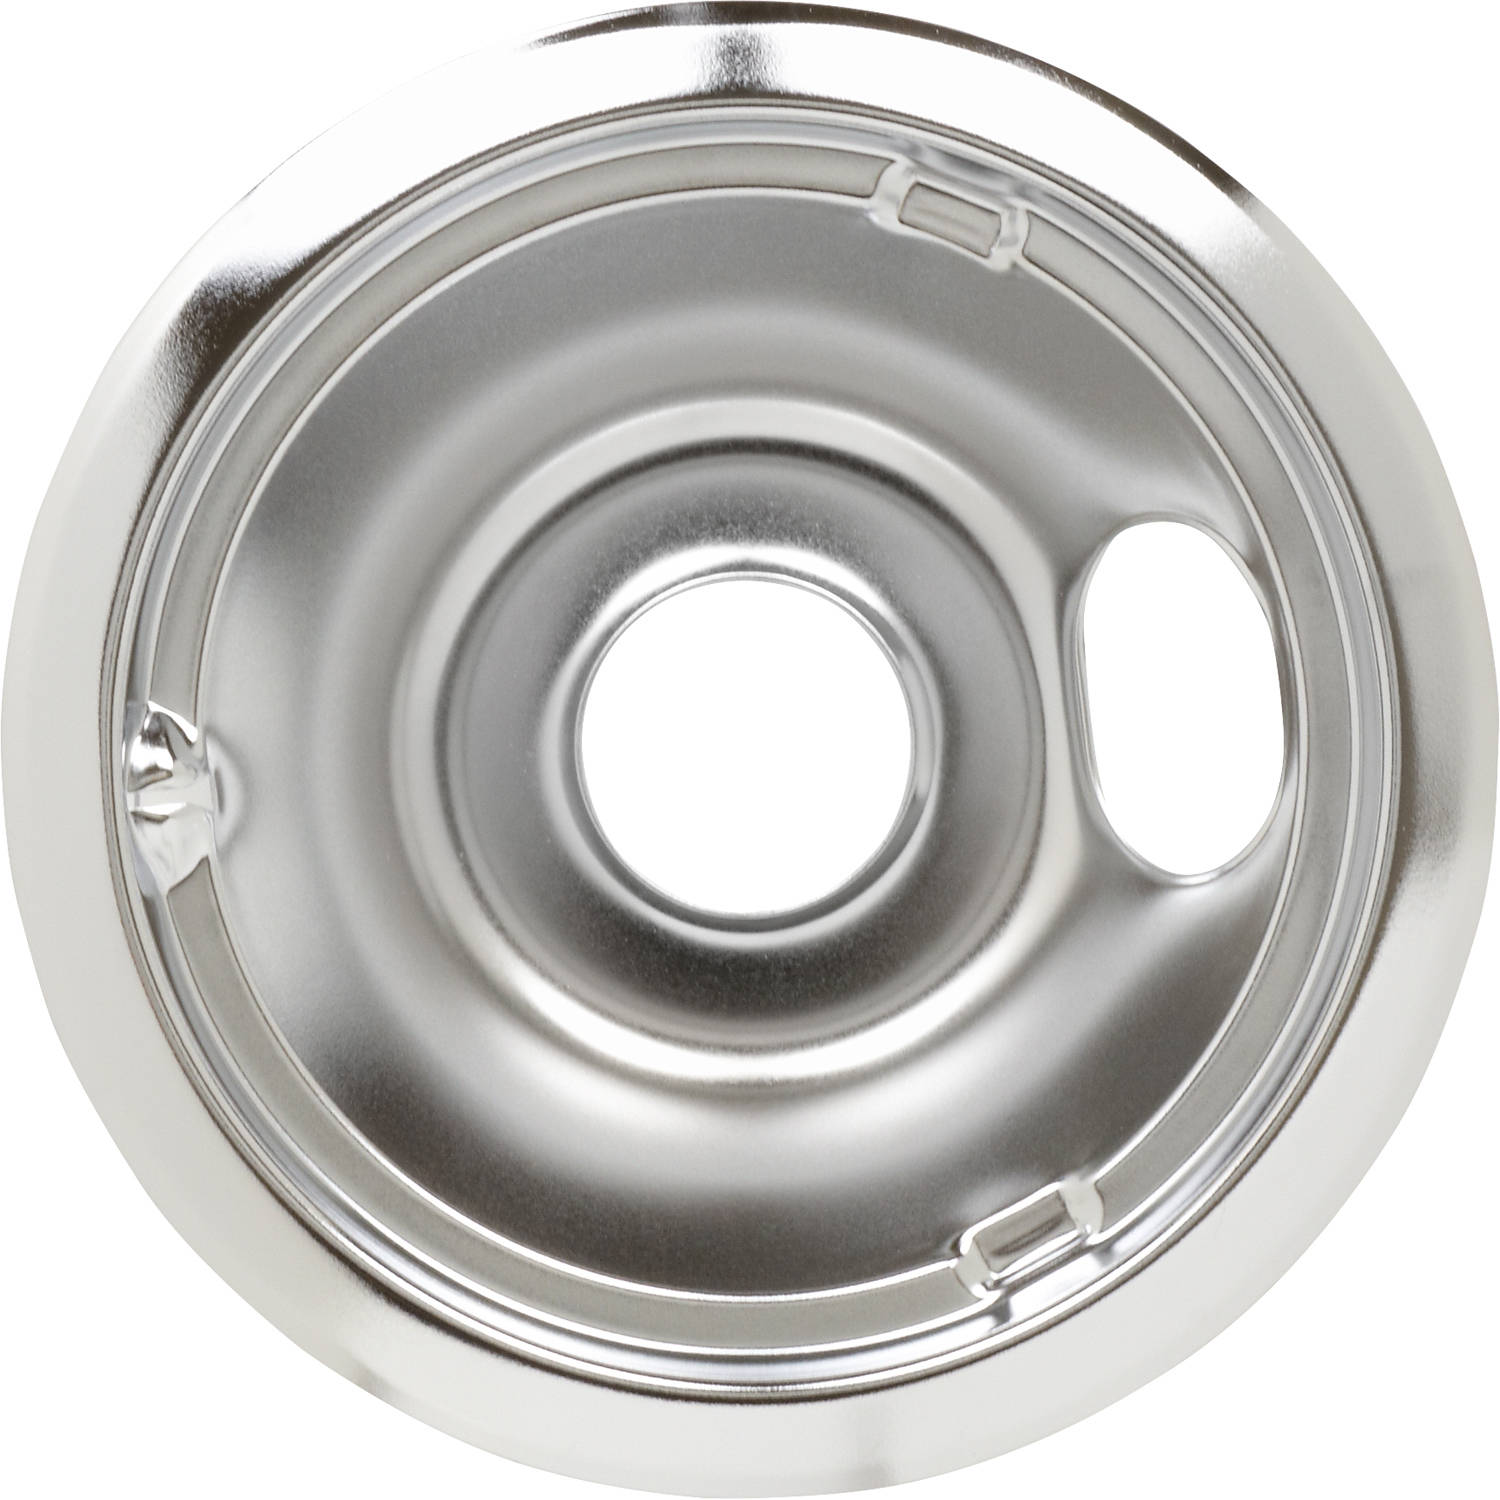 "General Electric WB31K5024 6"" Drip Pan"